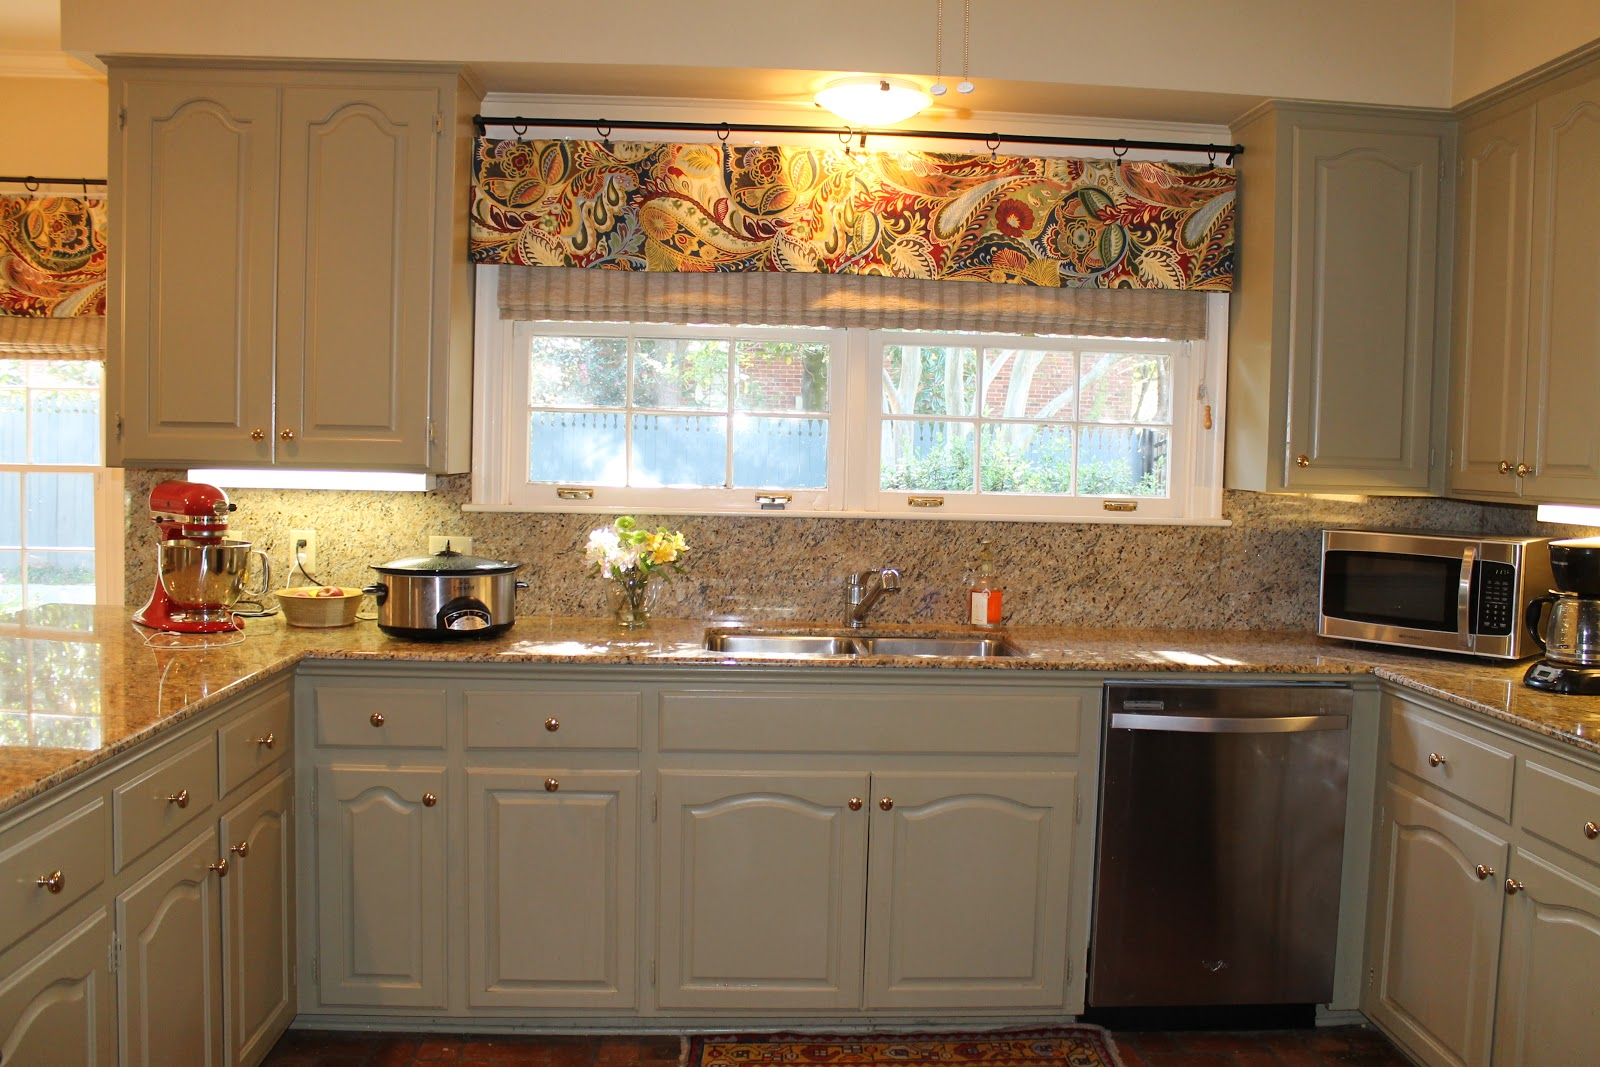 Kitchen Valance Patterns Carnage Seamingly Smitten How To Sew A Mini